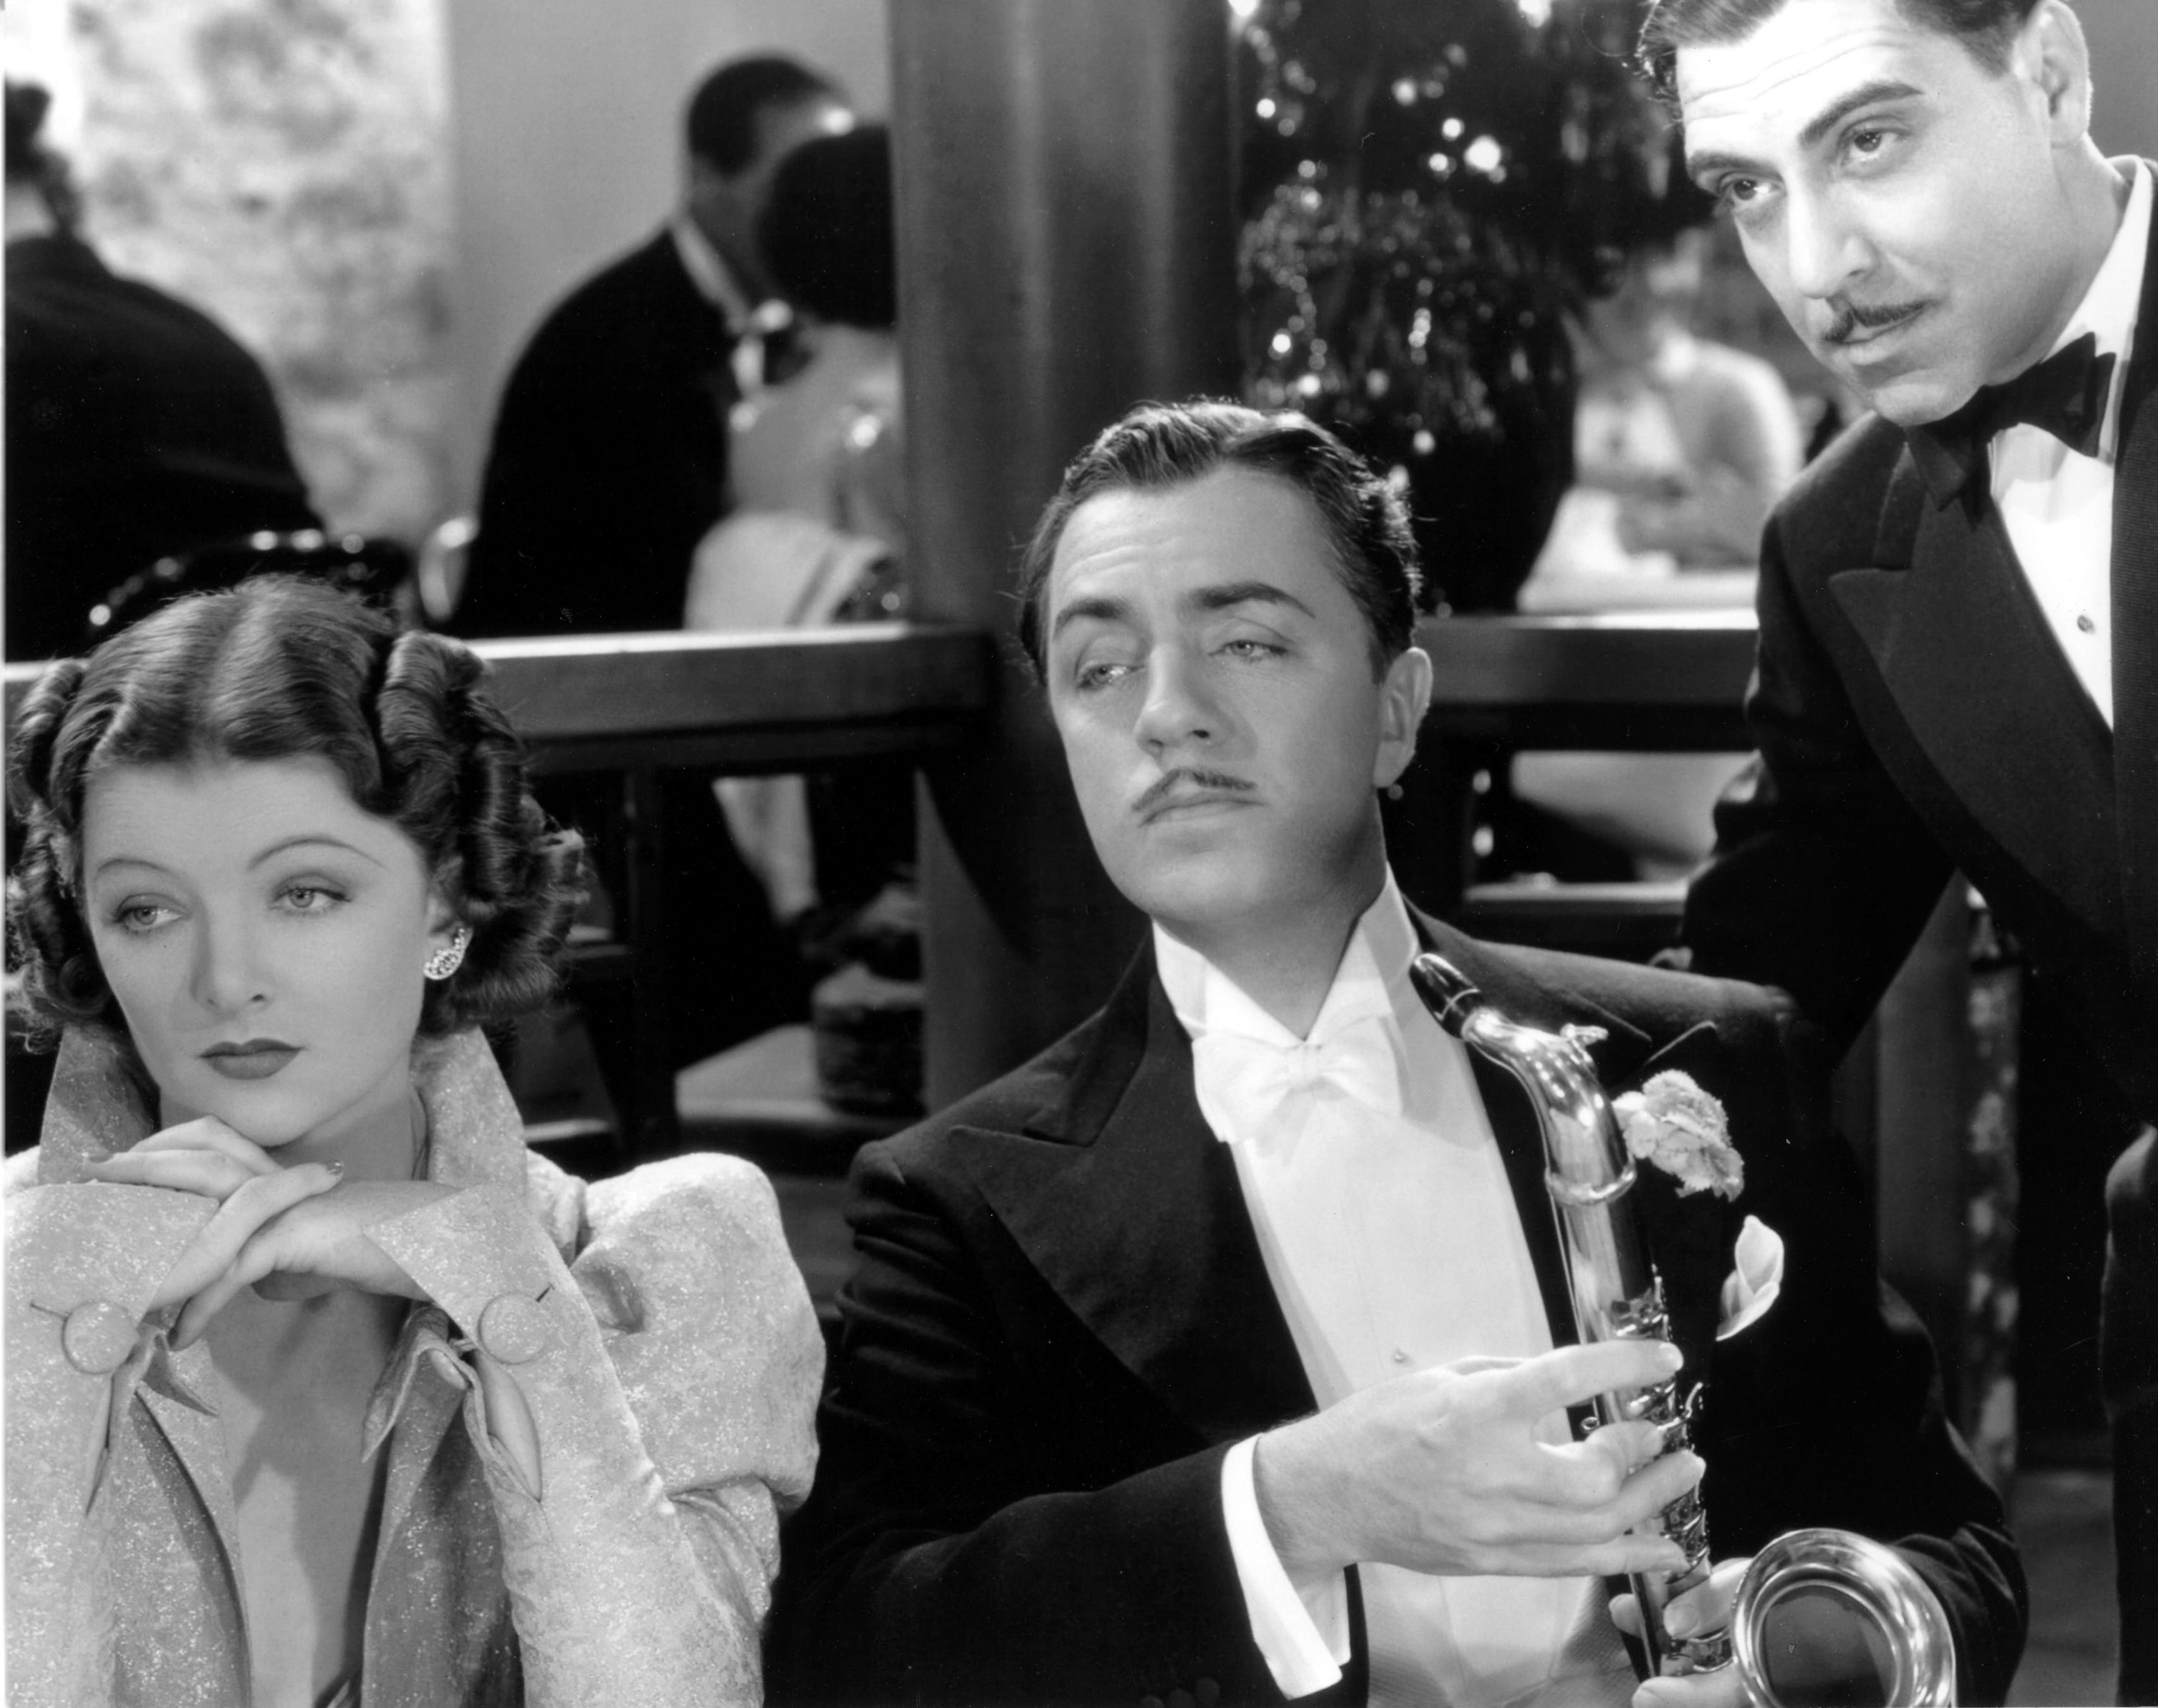 Myrna Loy, William Powell and Joseph Calleia AFTER THE